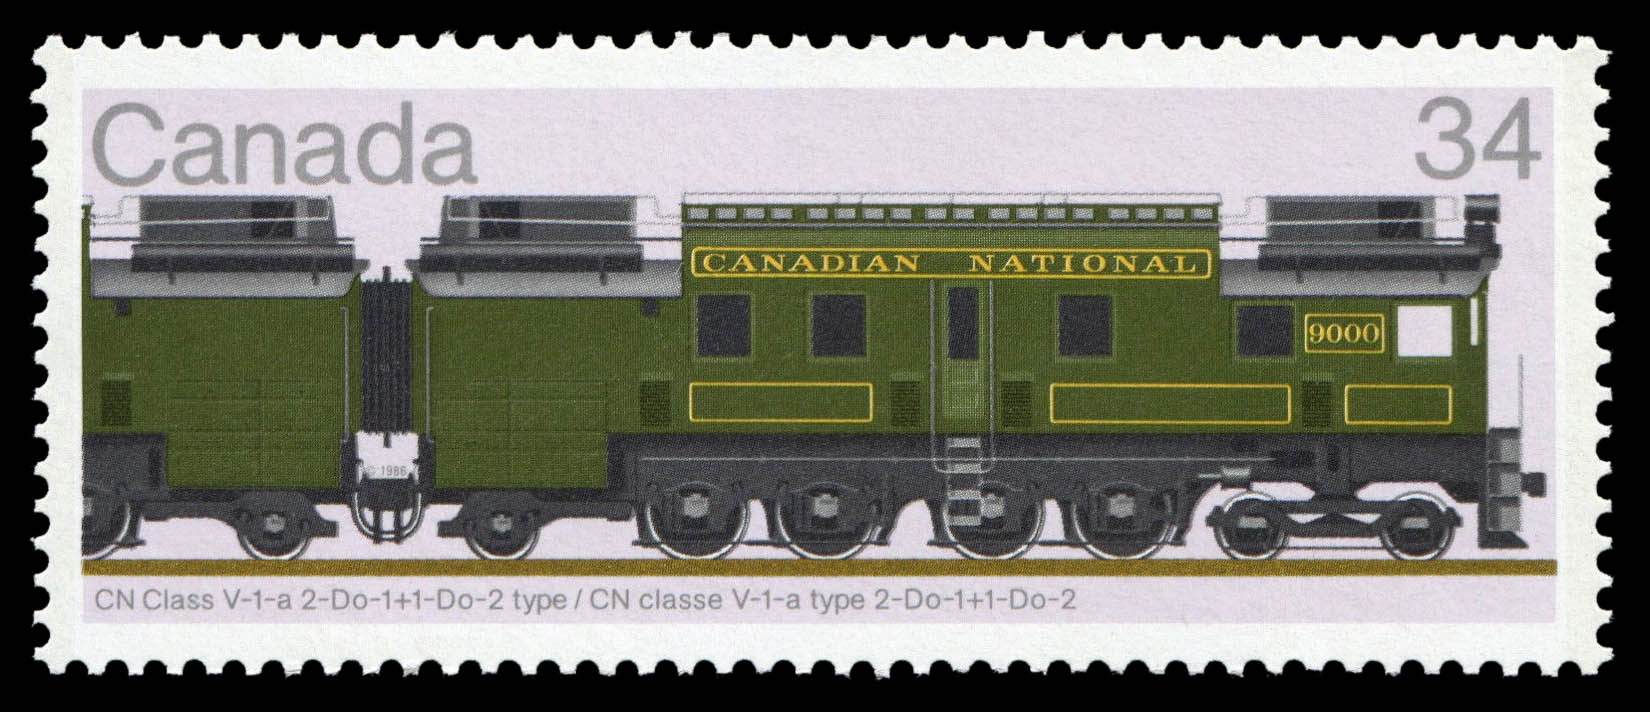 CN Class V-1-a 2-Do-1+1-Do-2 Type Canada Postage Stamp | Canadian Locomotives, 1925-1945